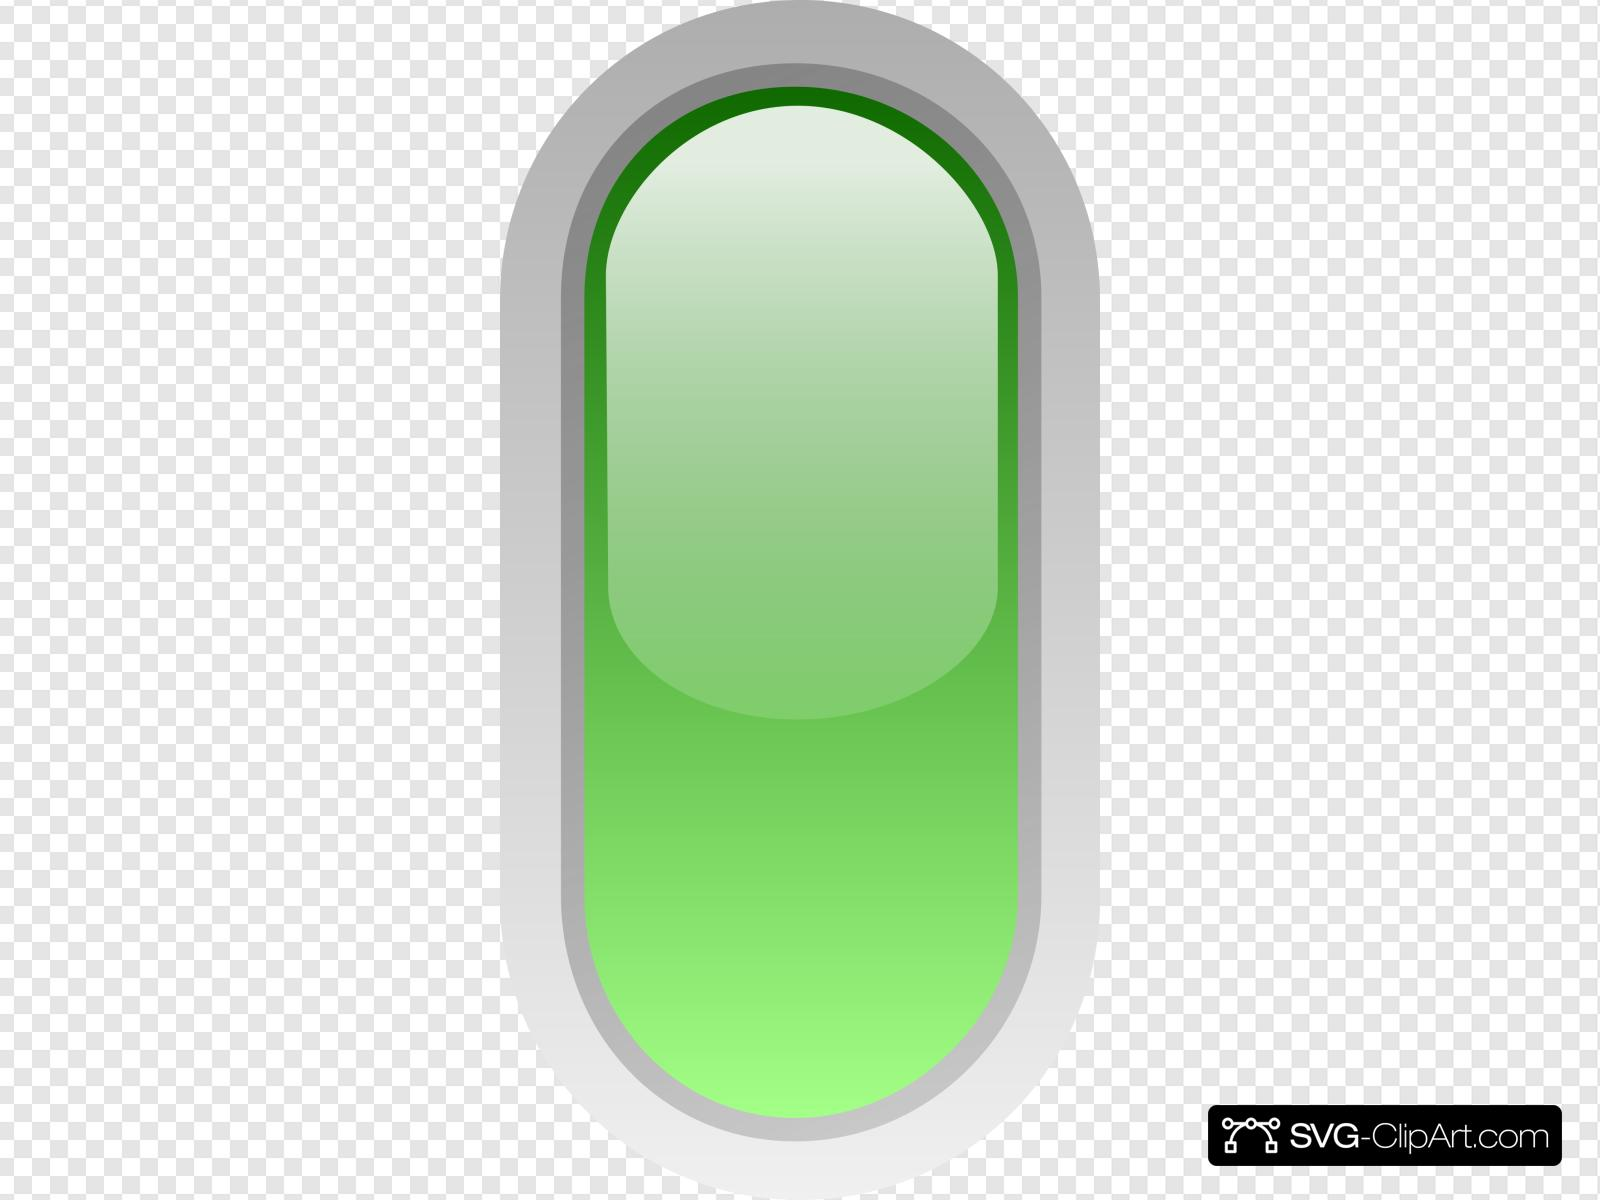 Led Rounded V Green Clip art, Icon and SVG.